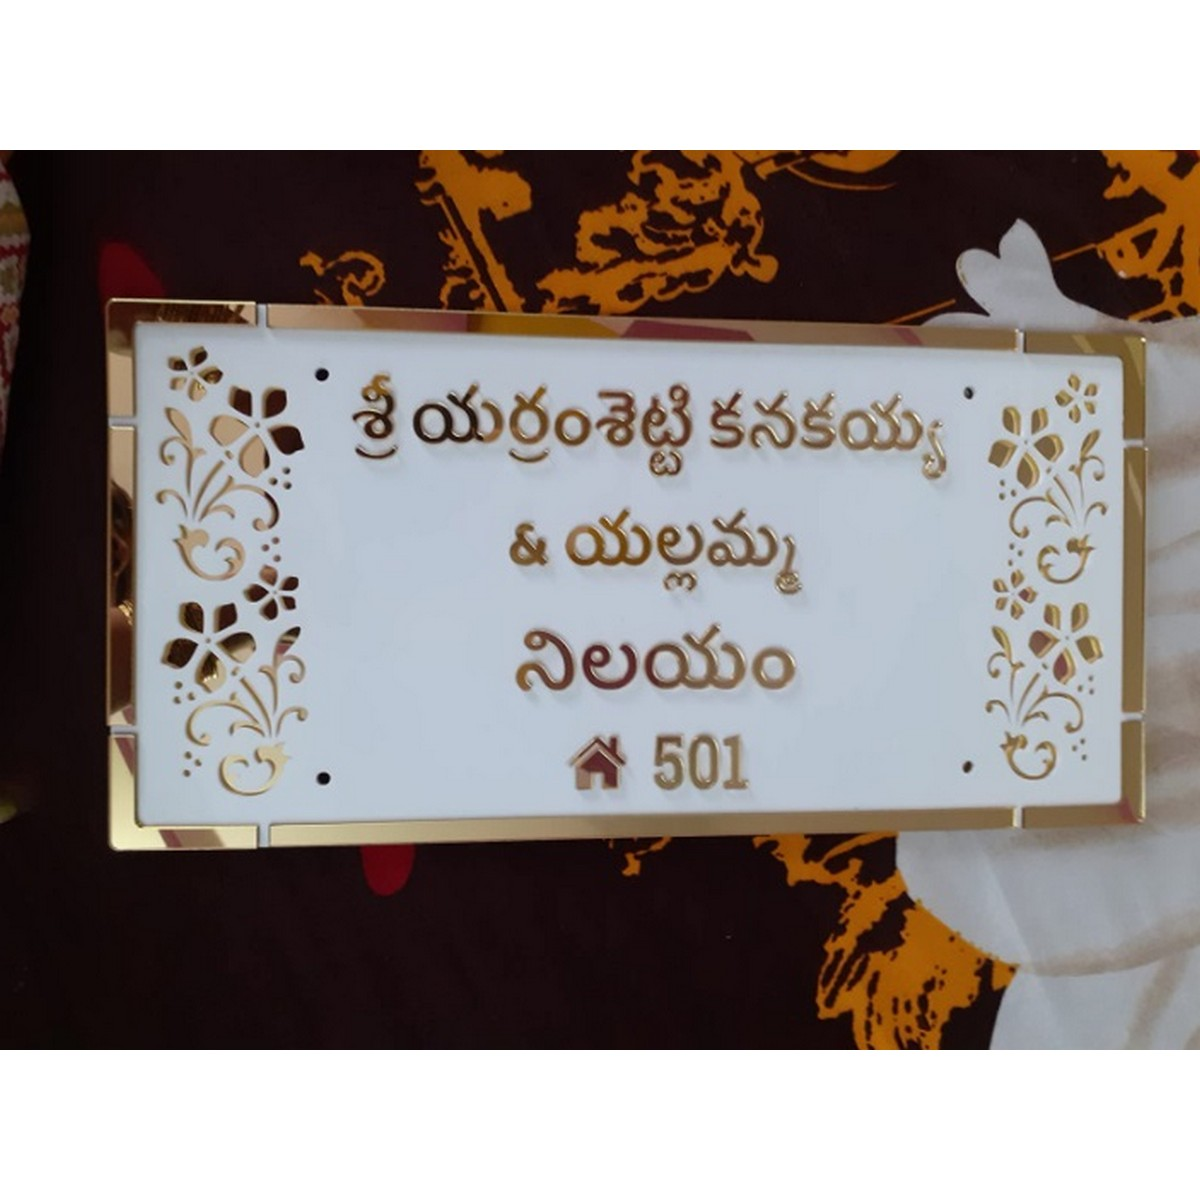 Golden Acrylic Embossed Letters Customized House Name Plate  Golden Acrylic Embossed Letters House Name Plate 4